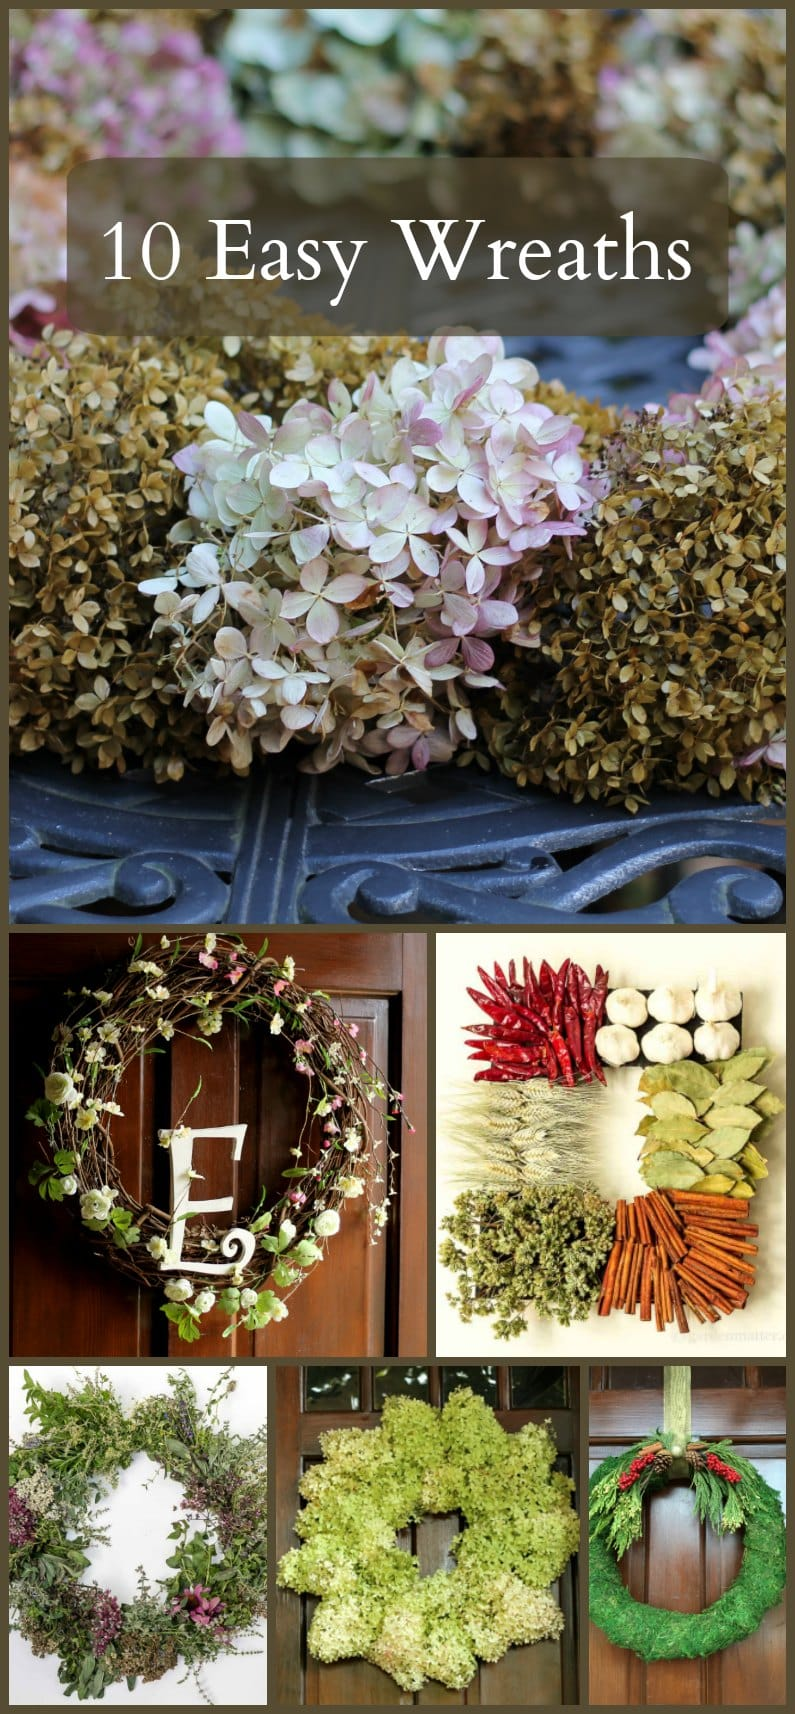 These 10 easy wreaths can be made in one hour. Make one to adorn your front door to great your guests, hang above your mantel, or anywhere in your home.